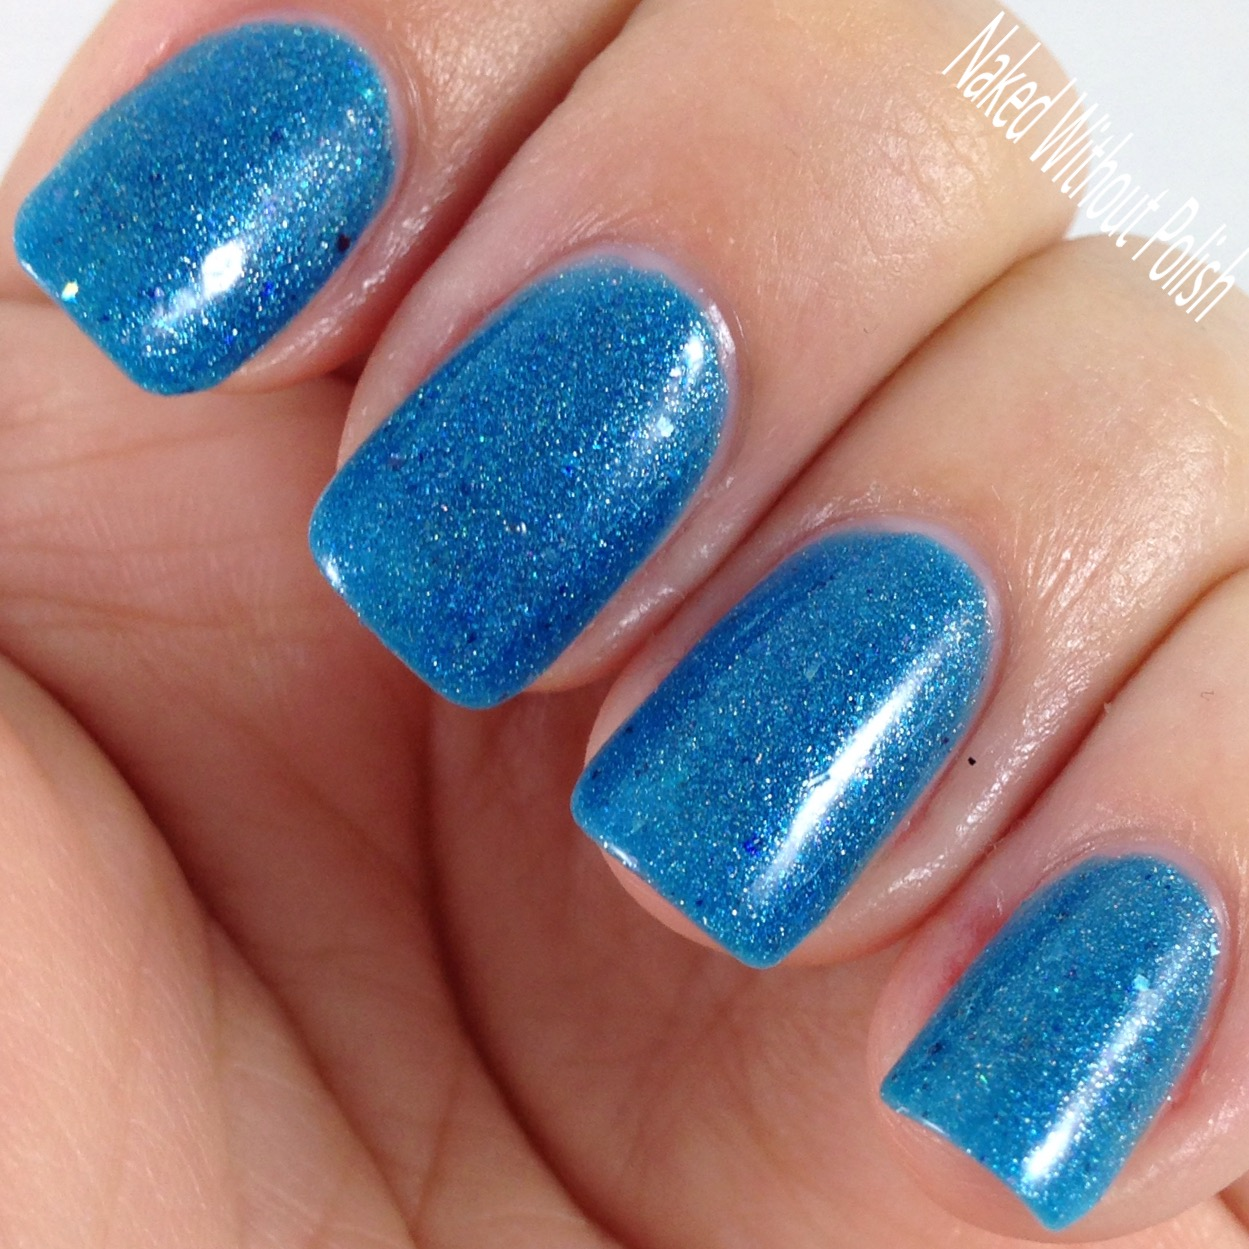 Polish-Pickup-Dainty-Digits-Stormy-Weather-8